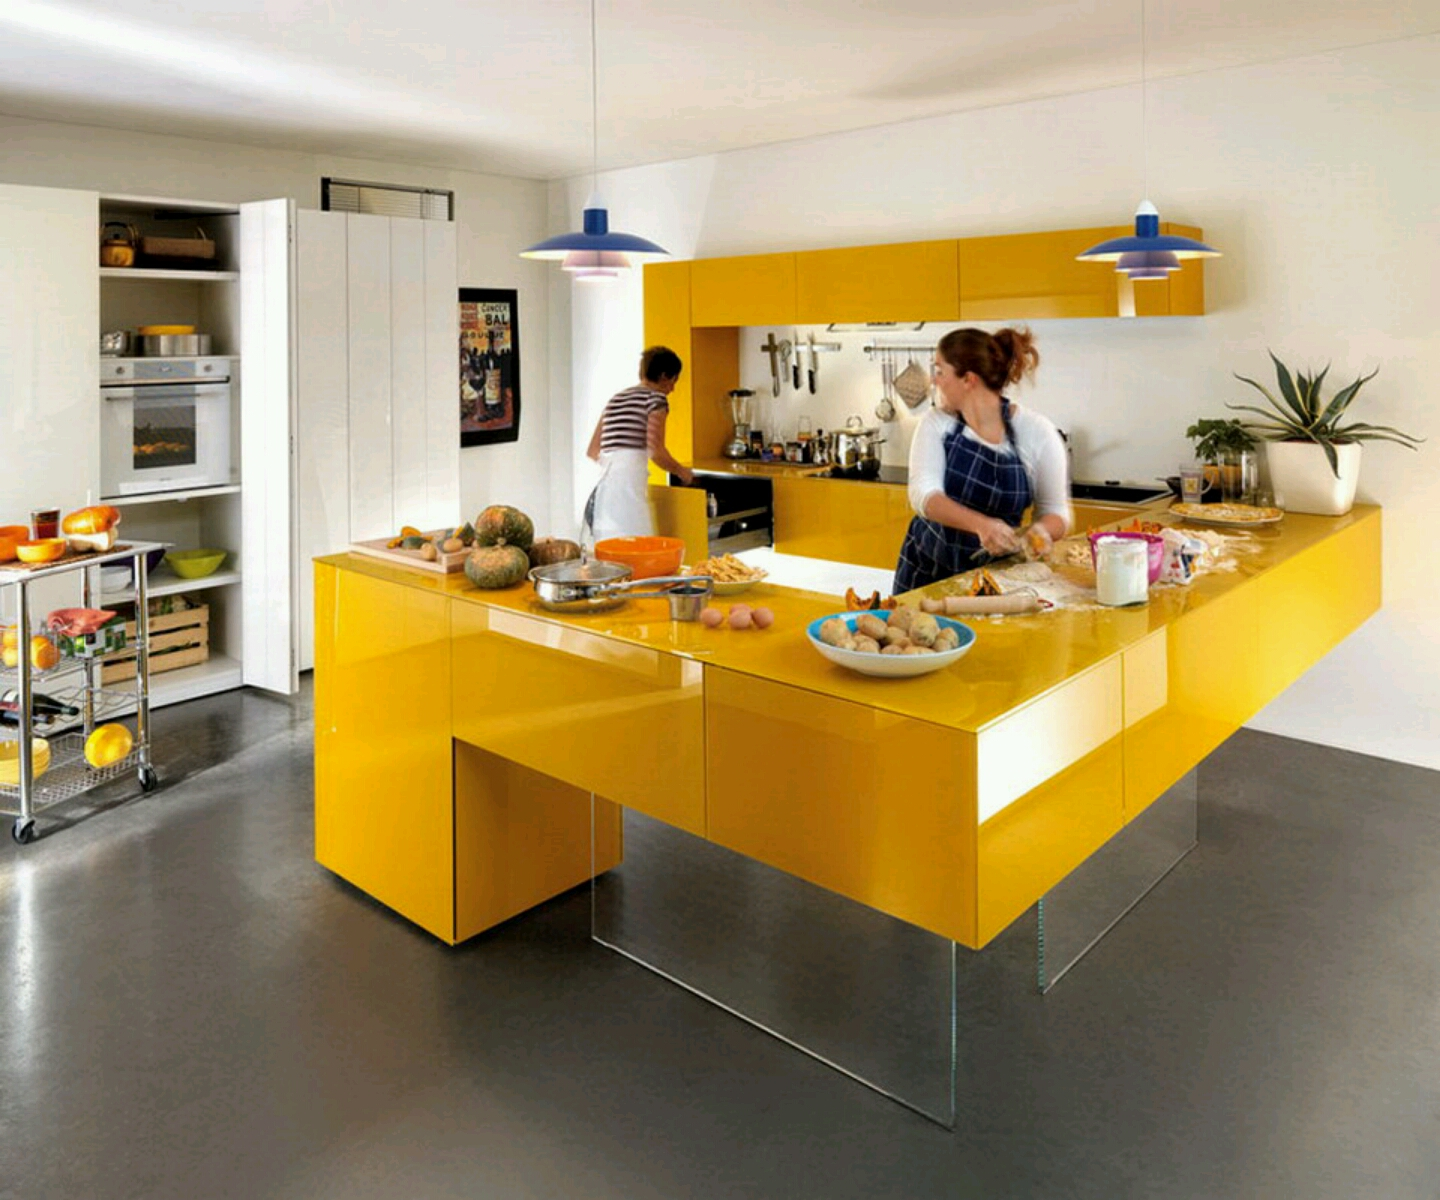 Modern kitchen cabinets designs ideas furniture gallery for Modern kitchen design ideas